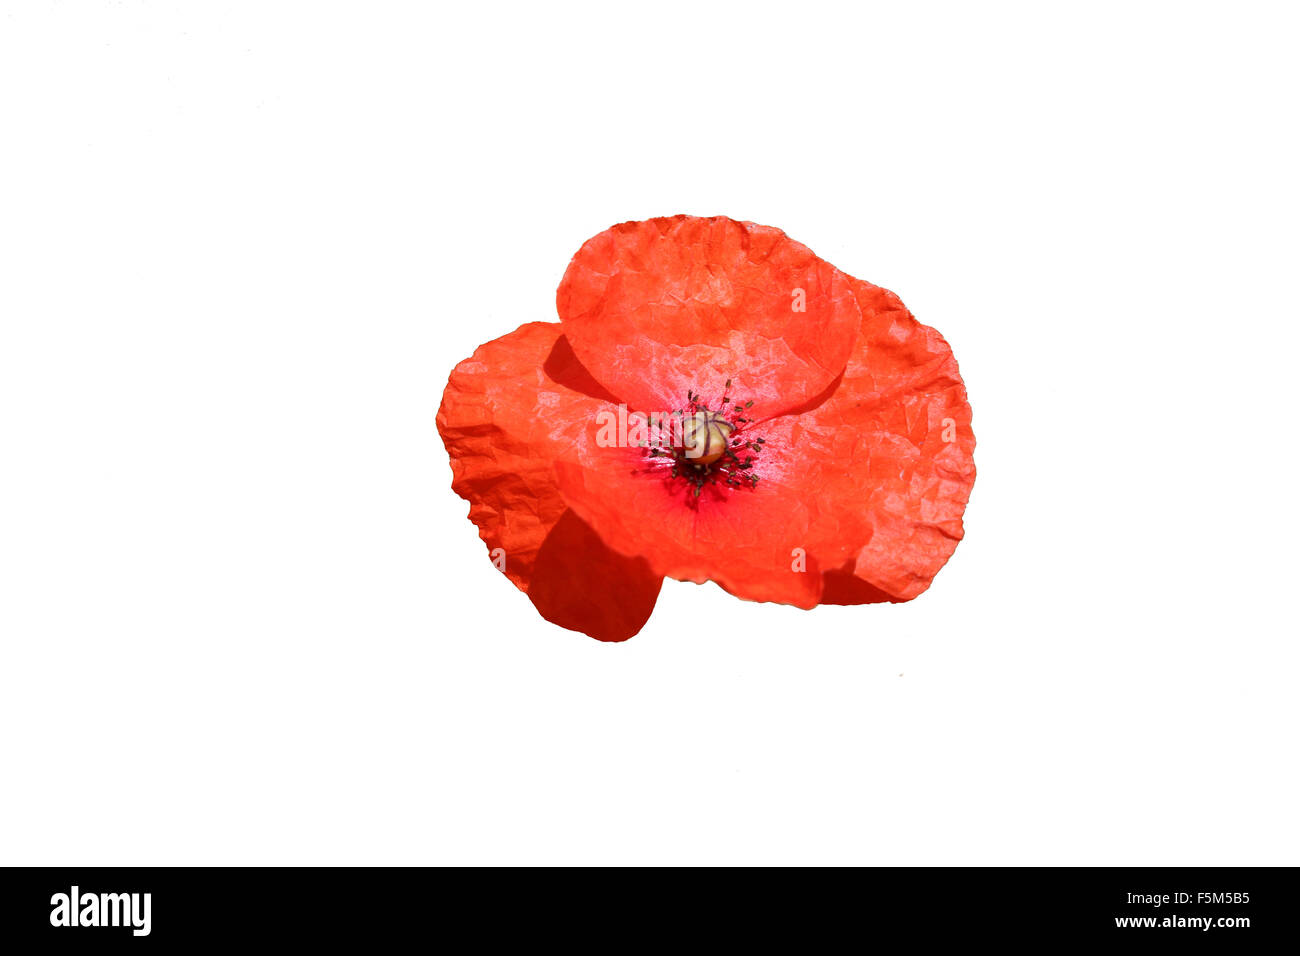 Common red poppy, Papaver rhoeas, isolated on a white background that could be used in connection with a remembrance - Stock Image